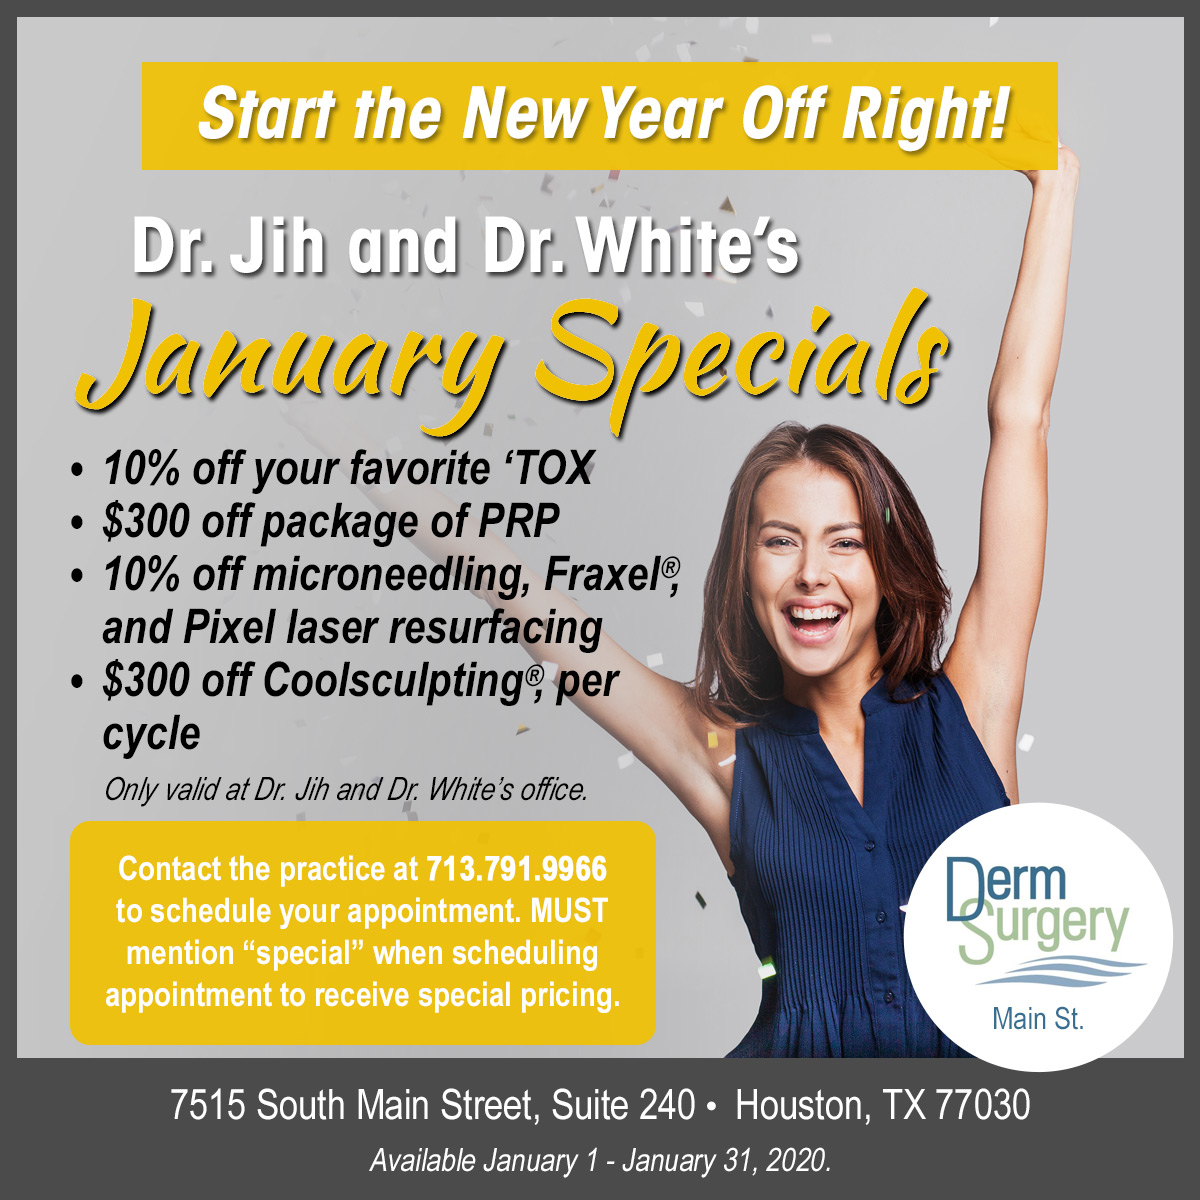 Dr. Jih and Dr. White's January Special